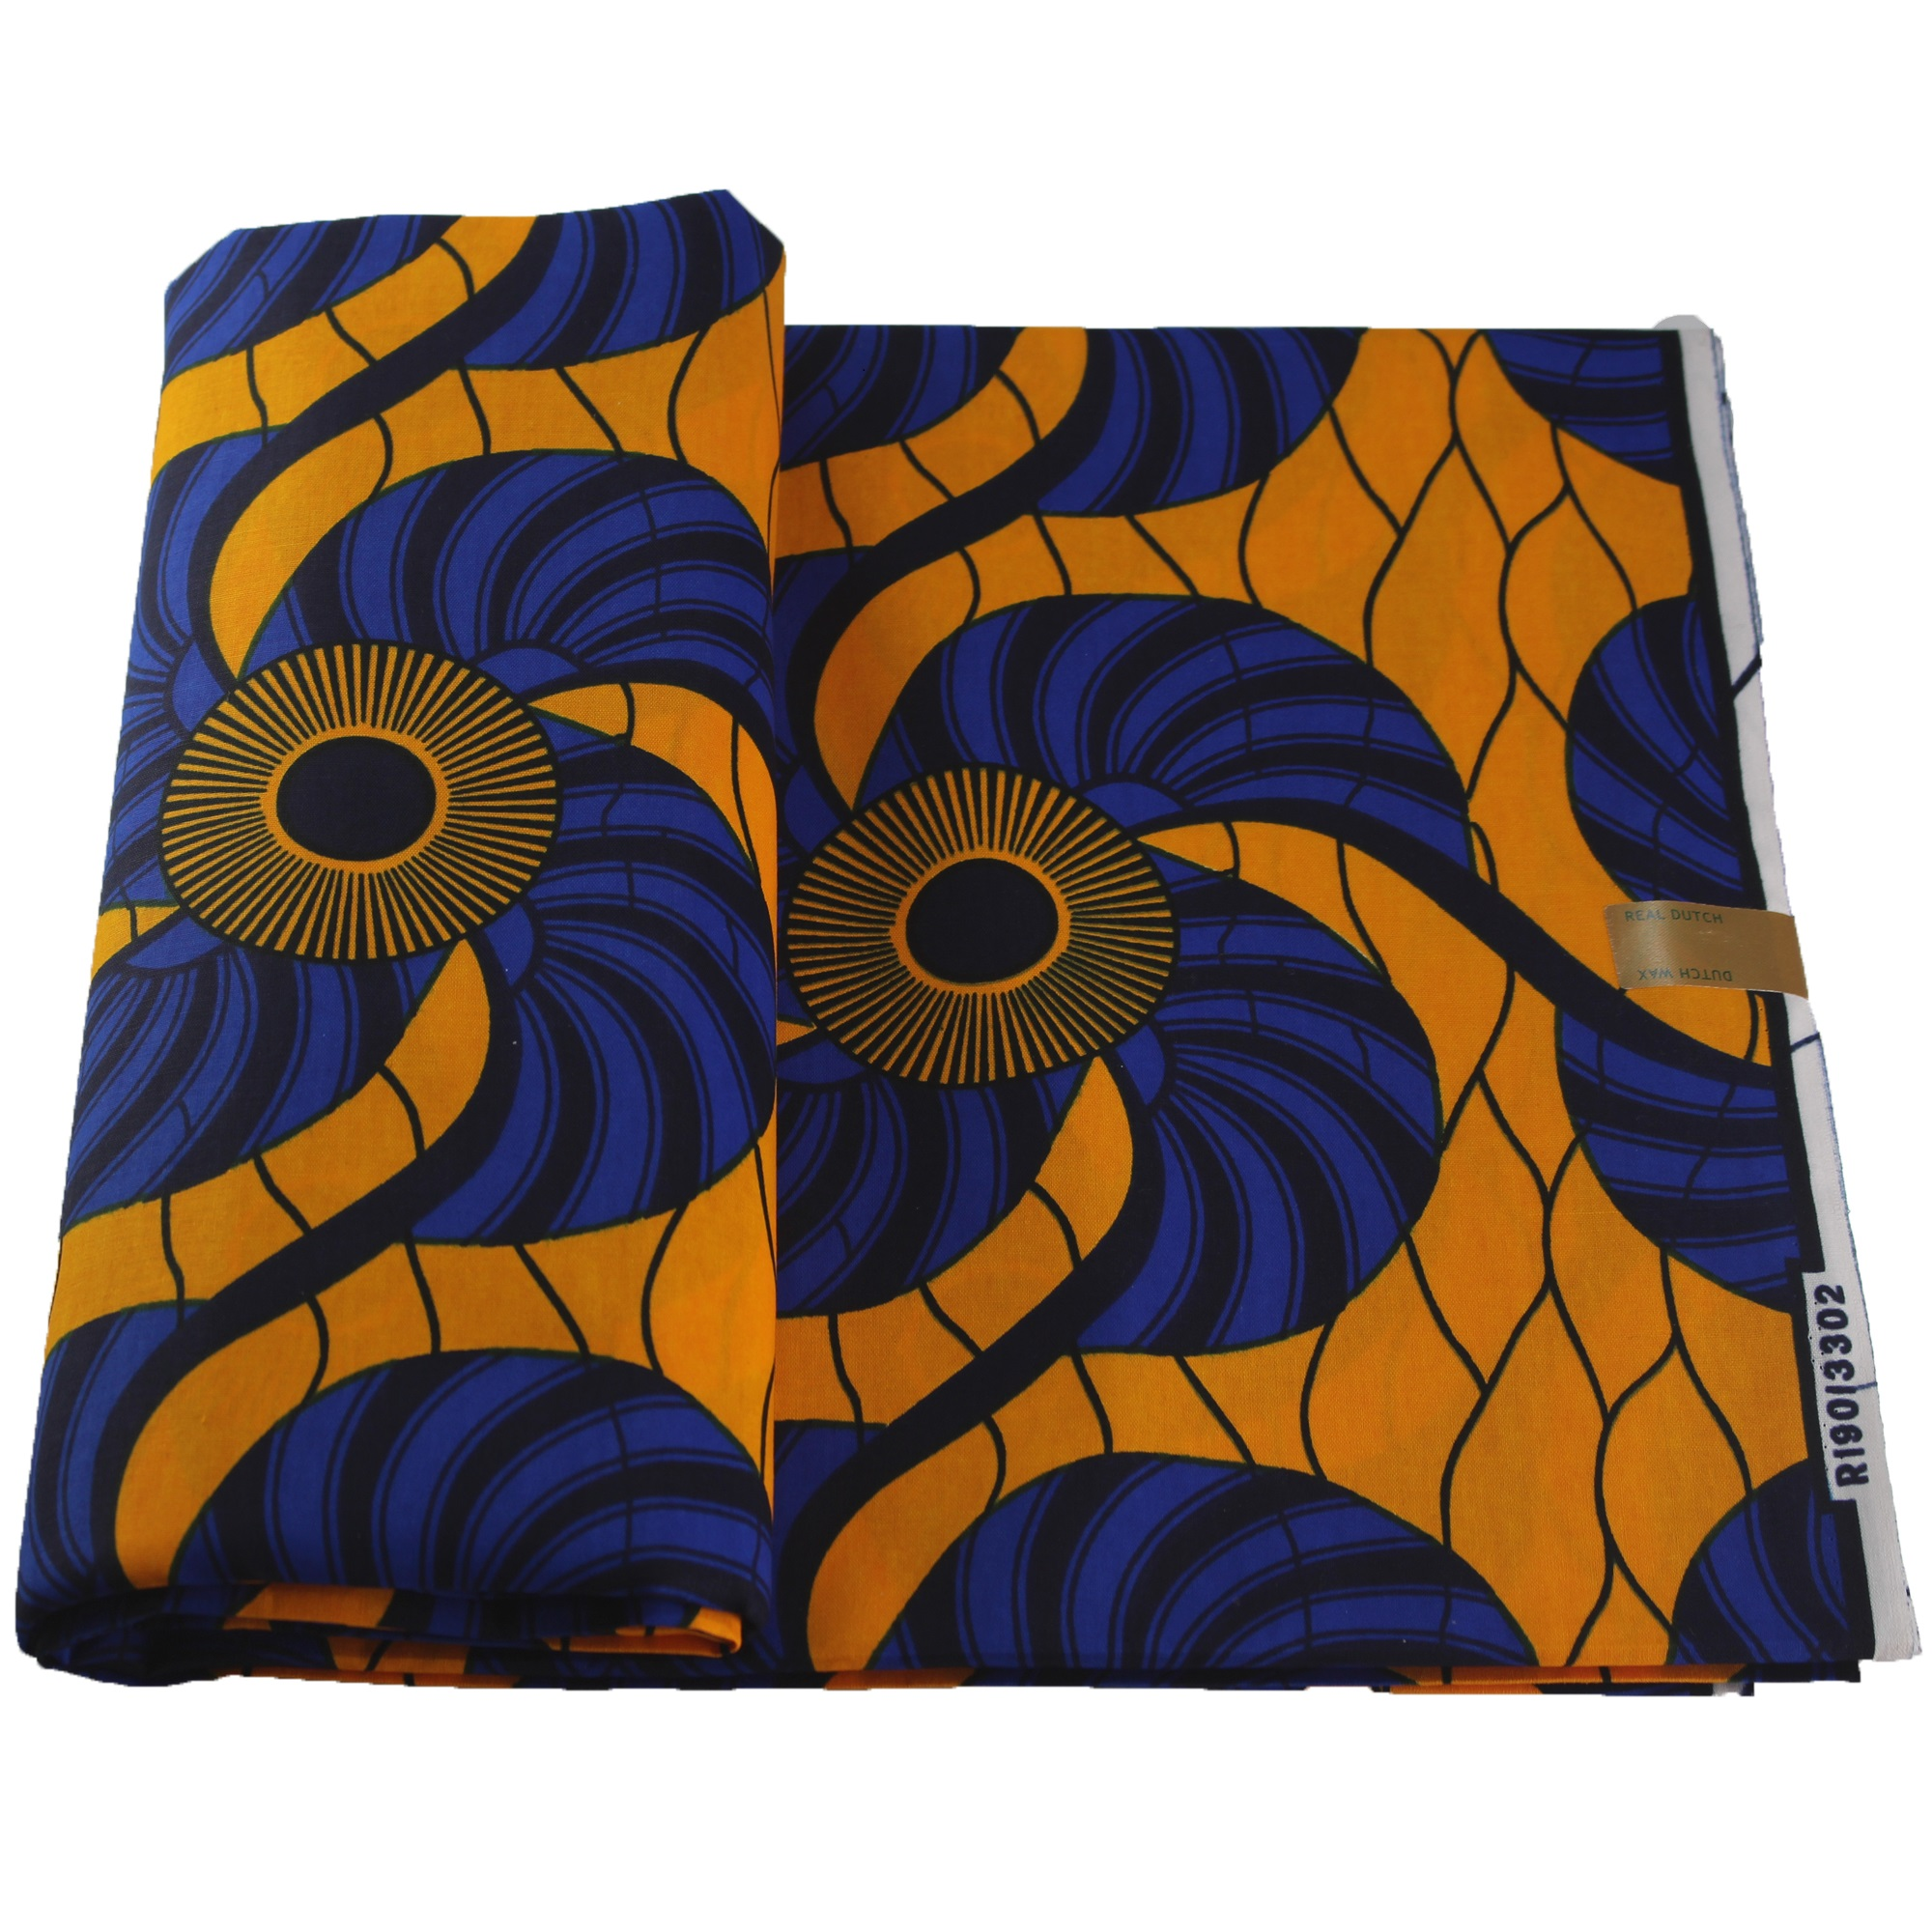 100% Cotton African Sunflower Printed Wax Fabrics Colorful DIY Sewing Fabric 6Yards